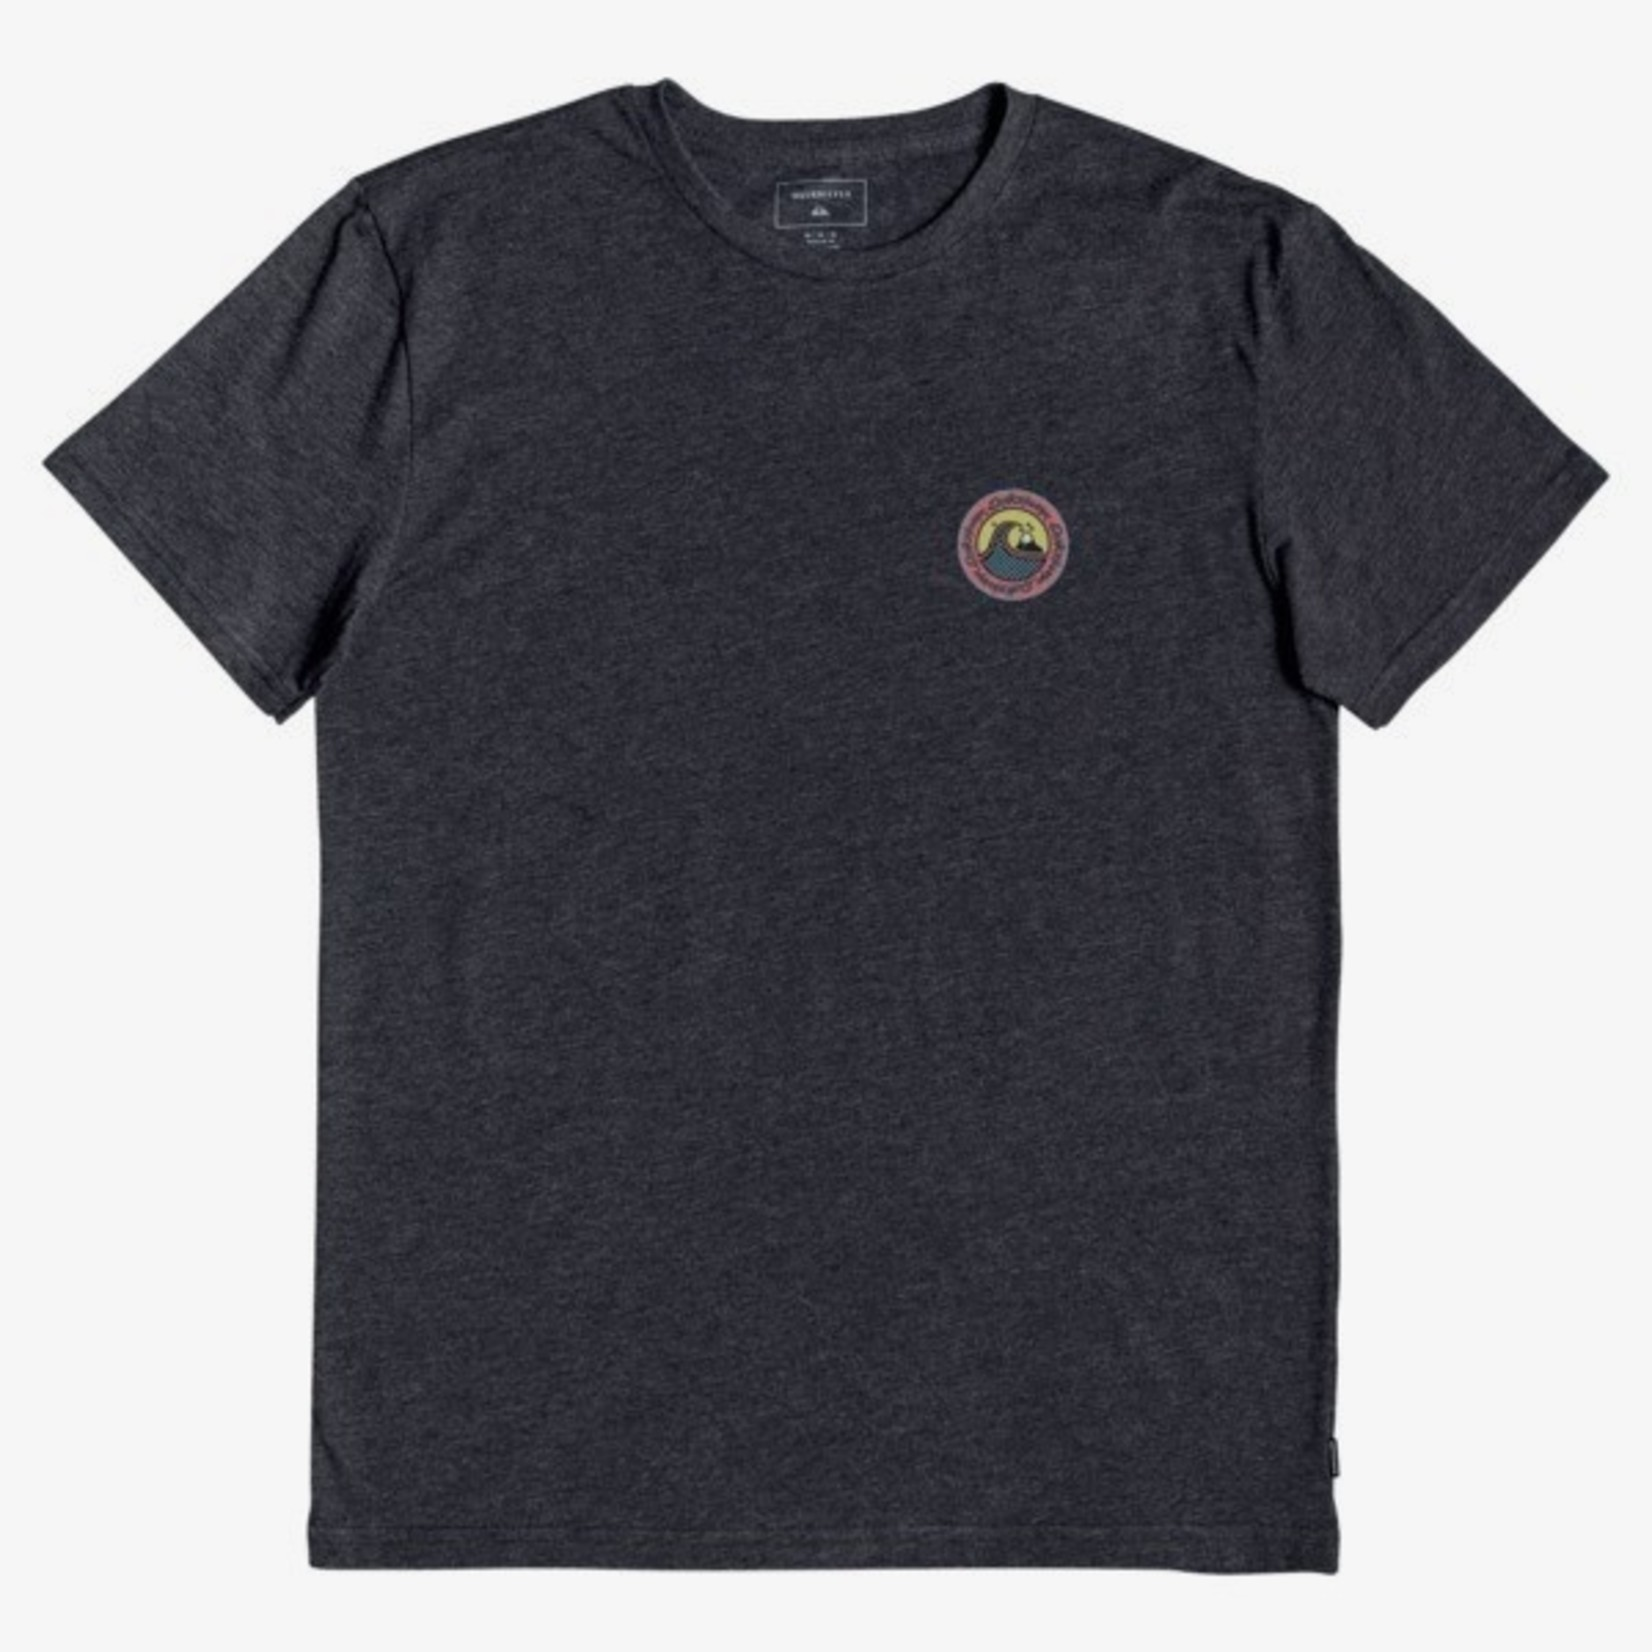 Quiksilver Quiksilver Youth Electric Roots Tee